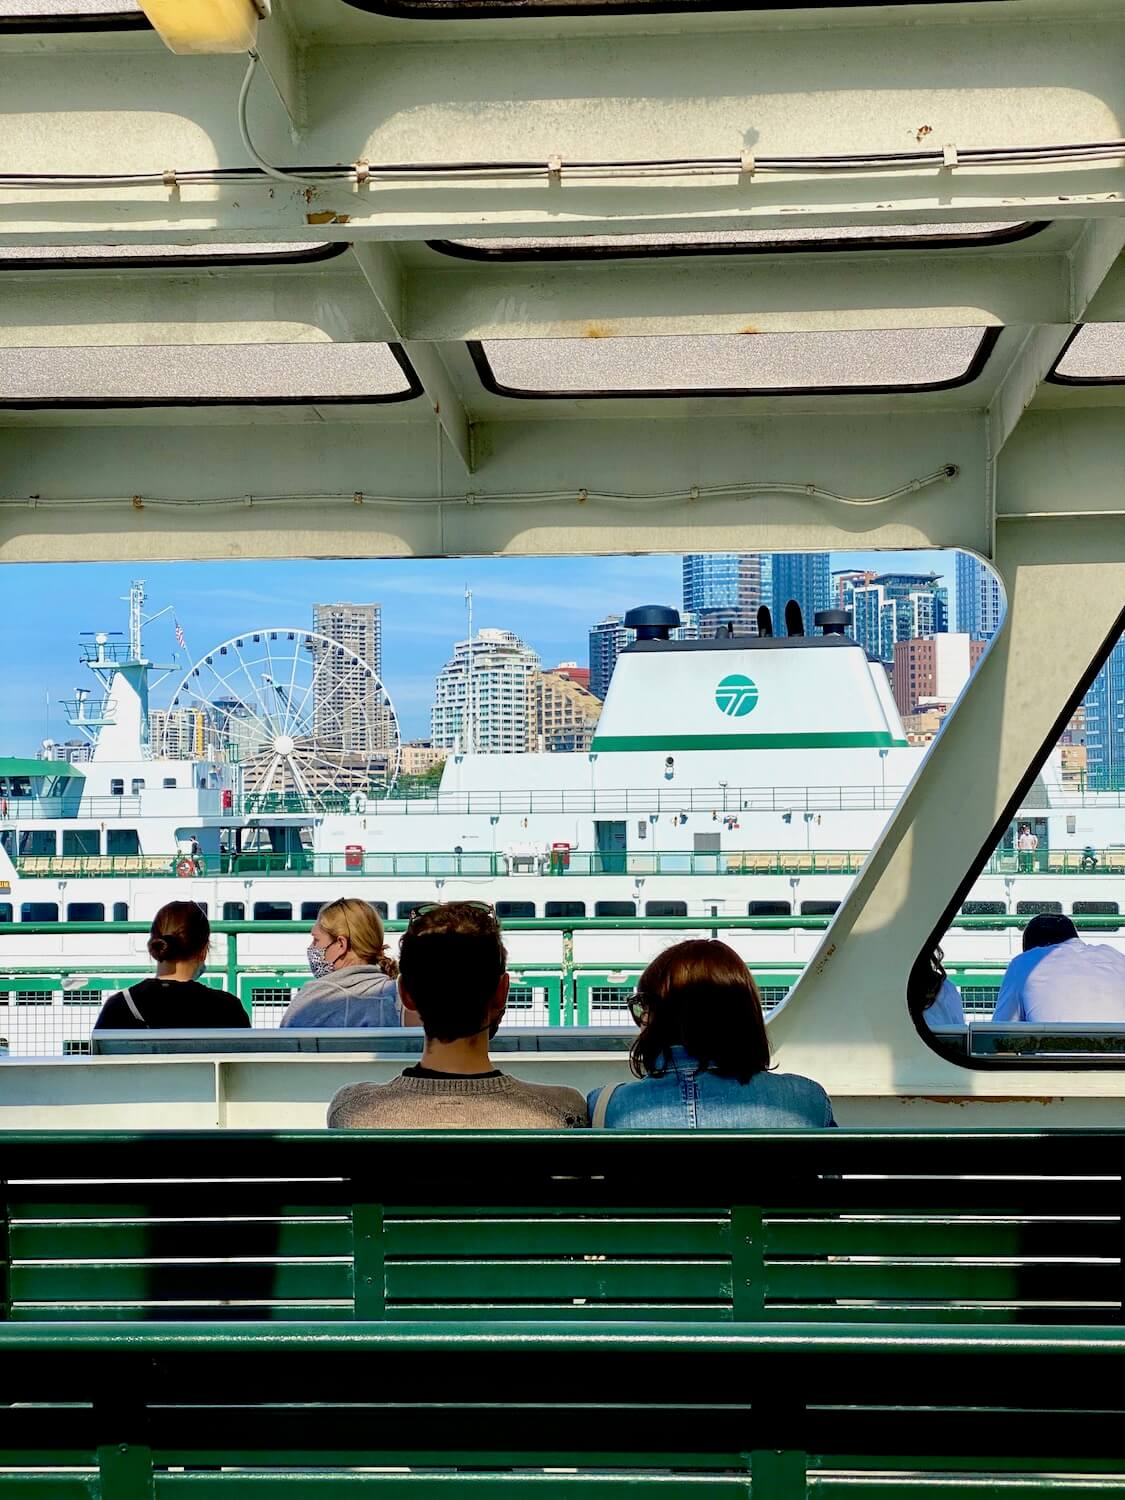 No travel to the Pacific Northwest is complete without a ride across the Salish Sea. Here ferry passengers look out toward Downtown Seattle as the ferry prepares to navigate it's way to a destination on the other side of the Puget Sound. The benches are painted green and another ferry is in the background, just in front of Seattle's Big Wheel attraction downtown.